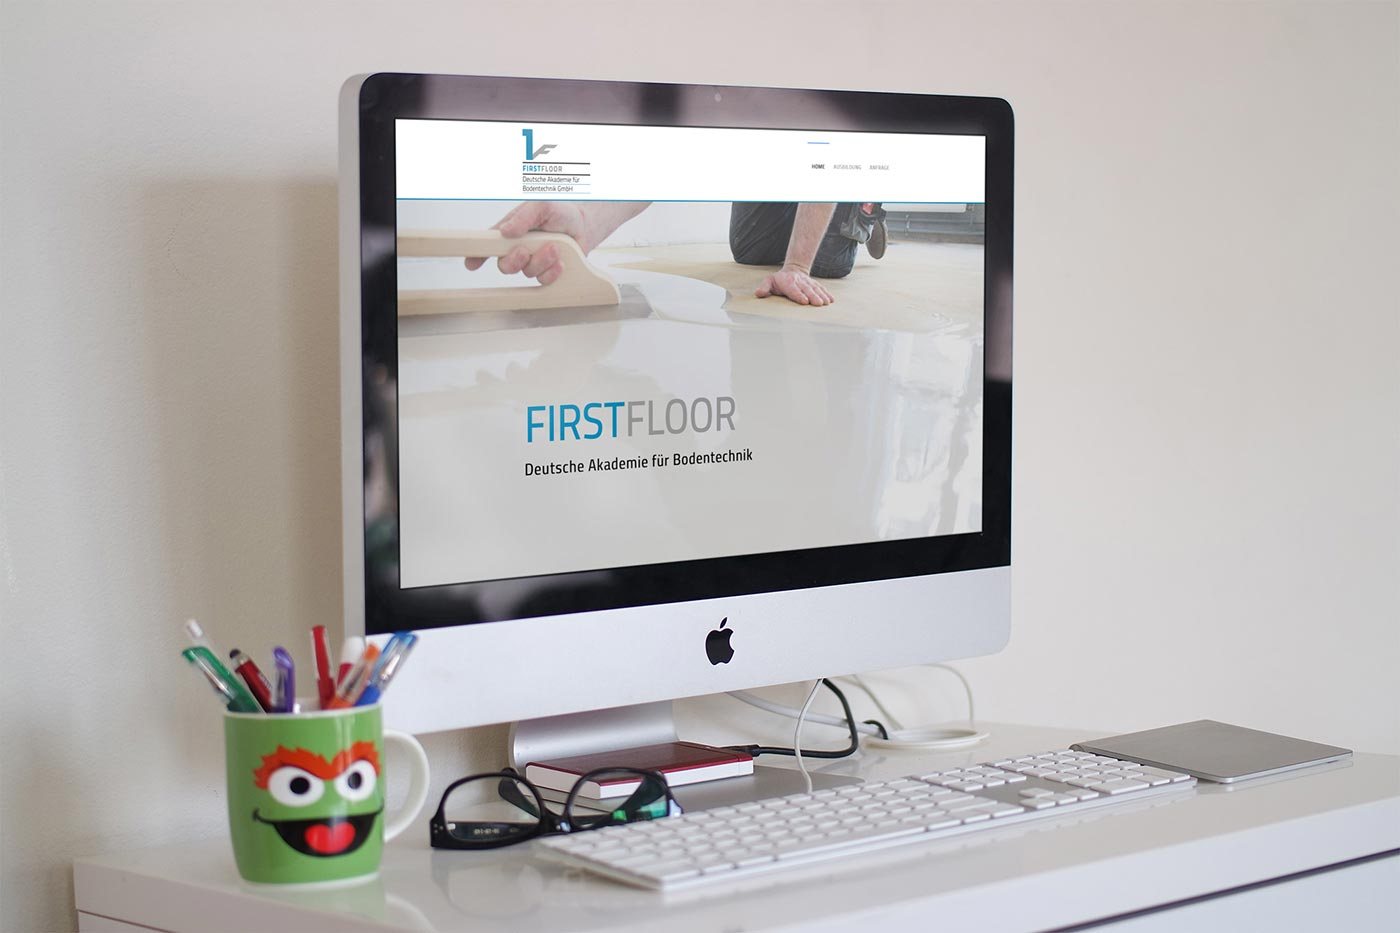 webdesign frankfurt firstfloor akademie 01